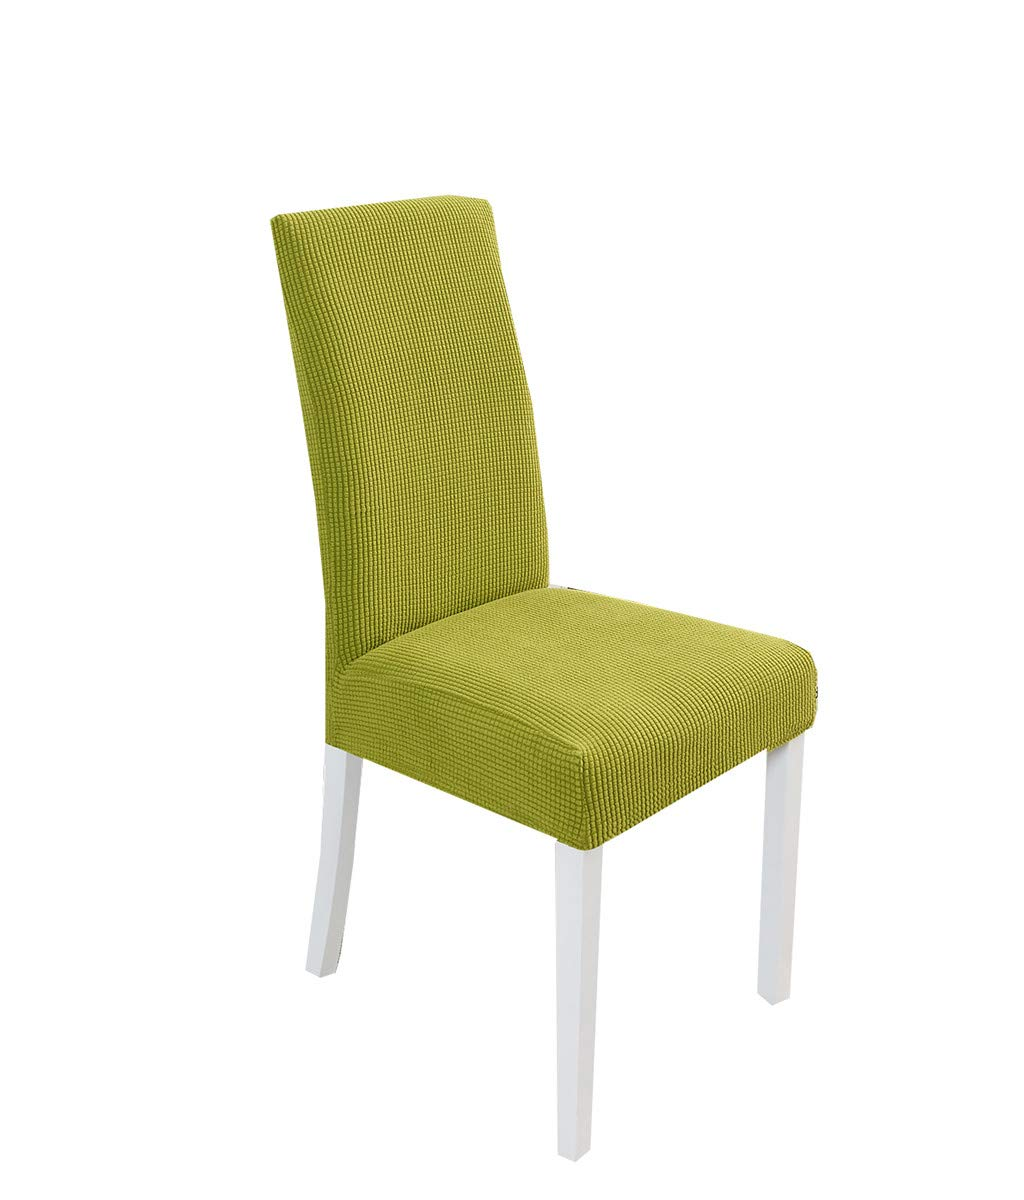 Lime Green Dining Chairs Chair Pads Amp Cushions